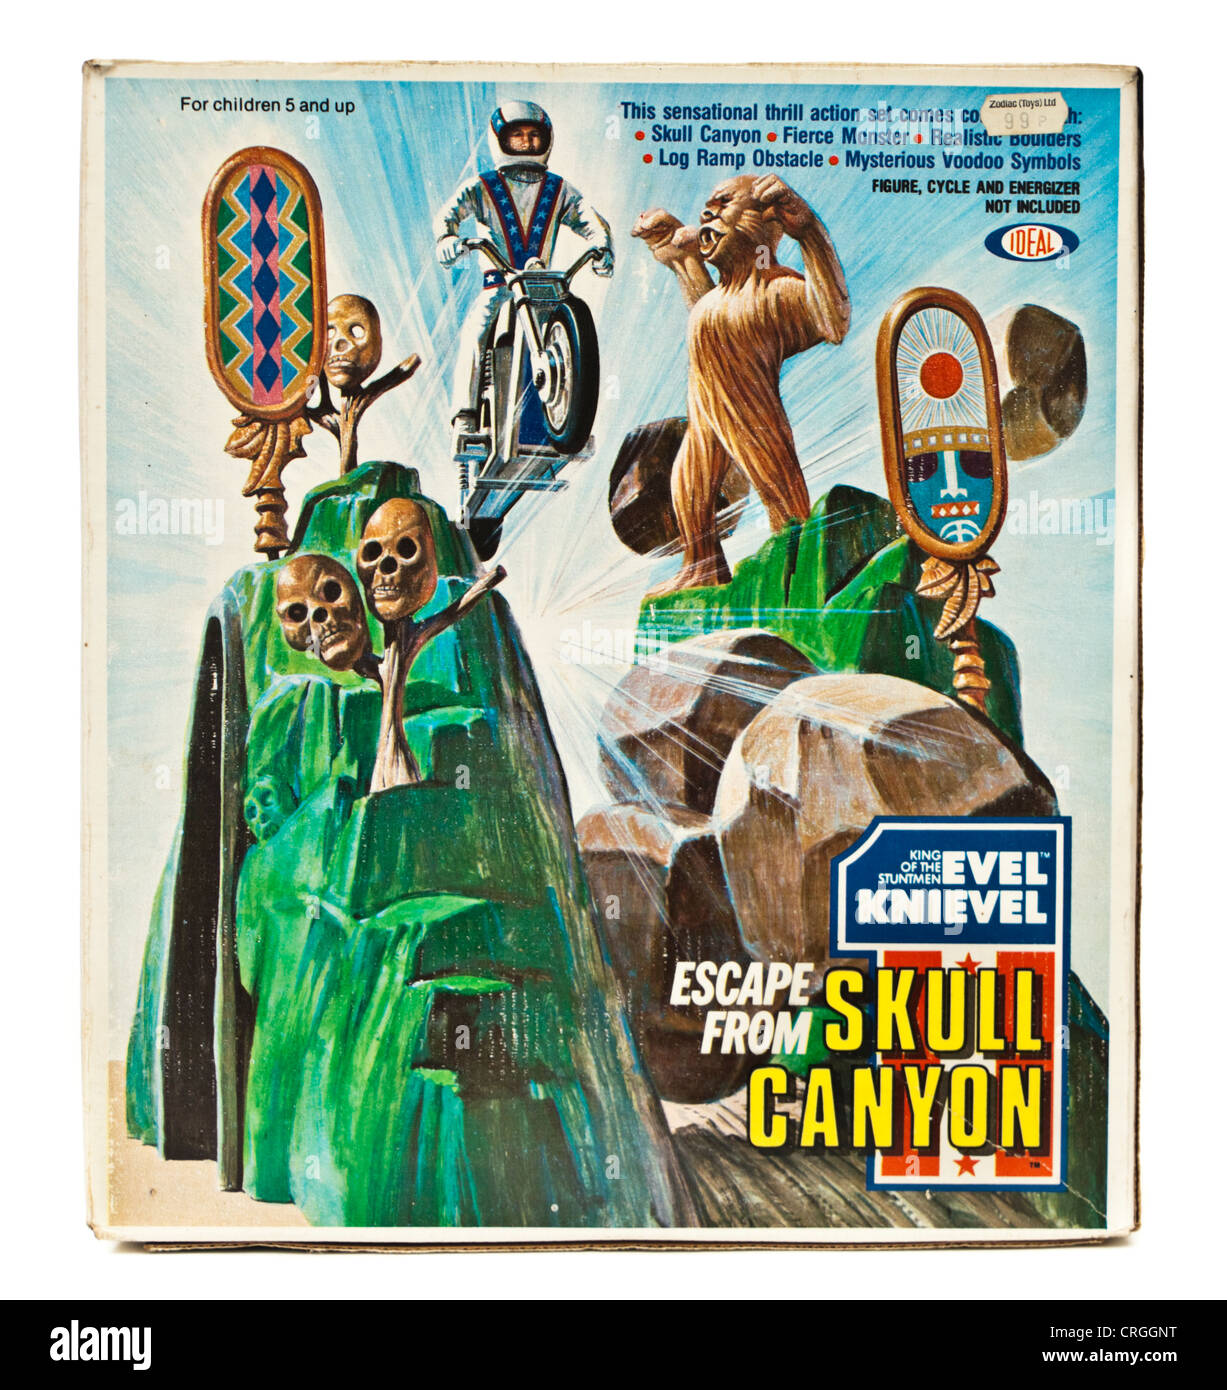 1975 Evel Knievel 'Escape from Skull Canyon' toy by Ideal - Stock Image